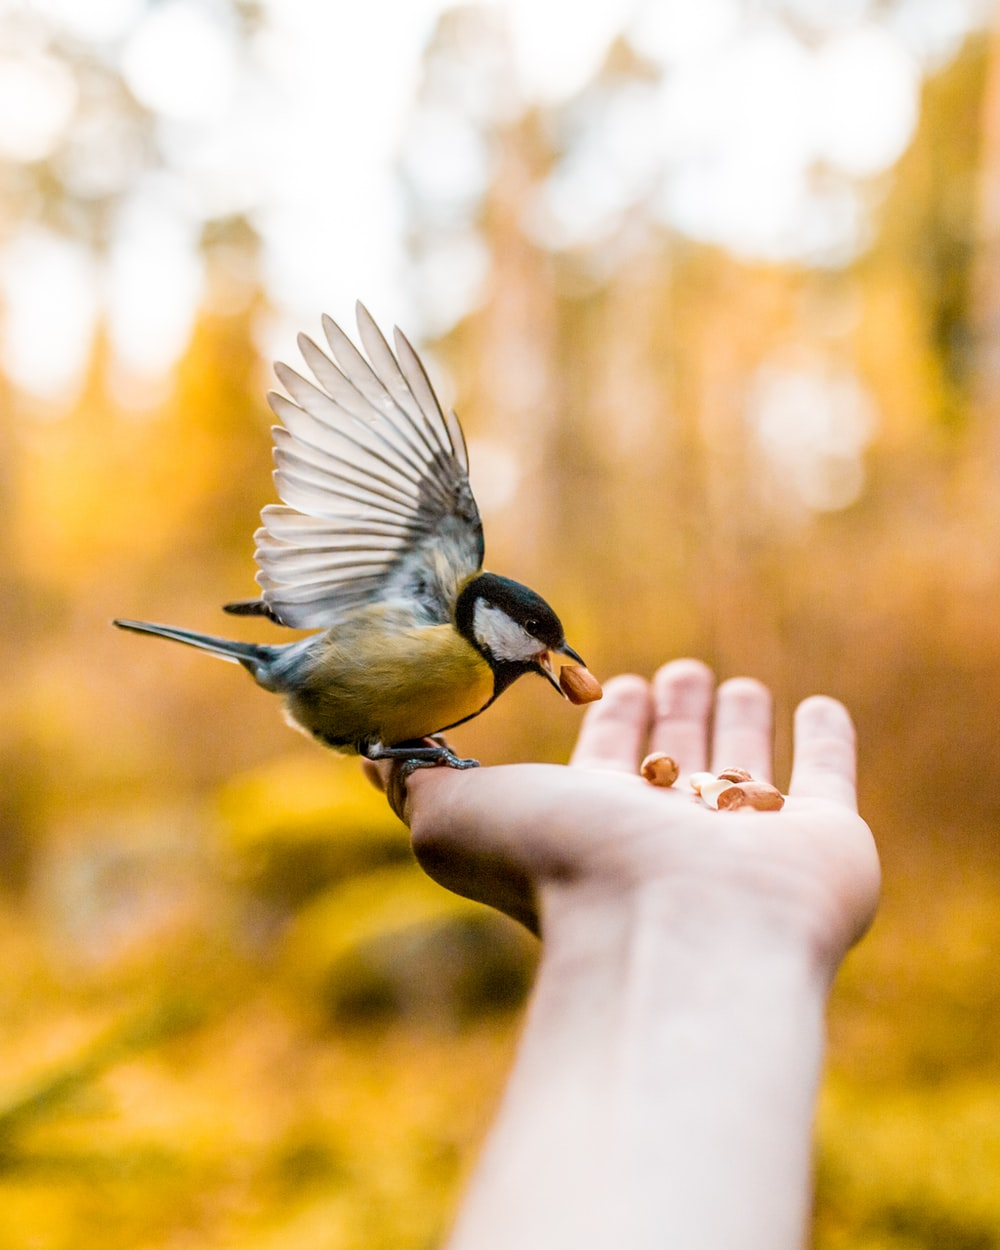 photo of brown and black bird on person palm eating a food